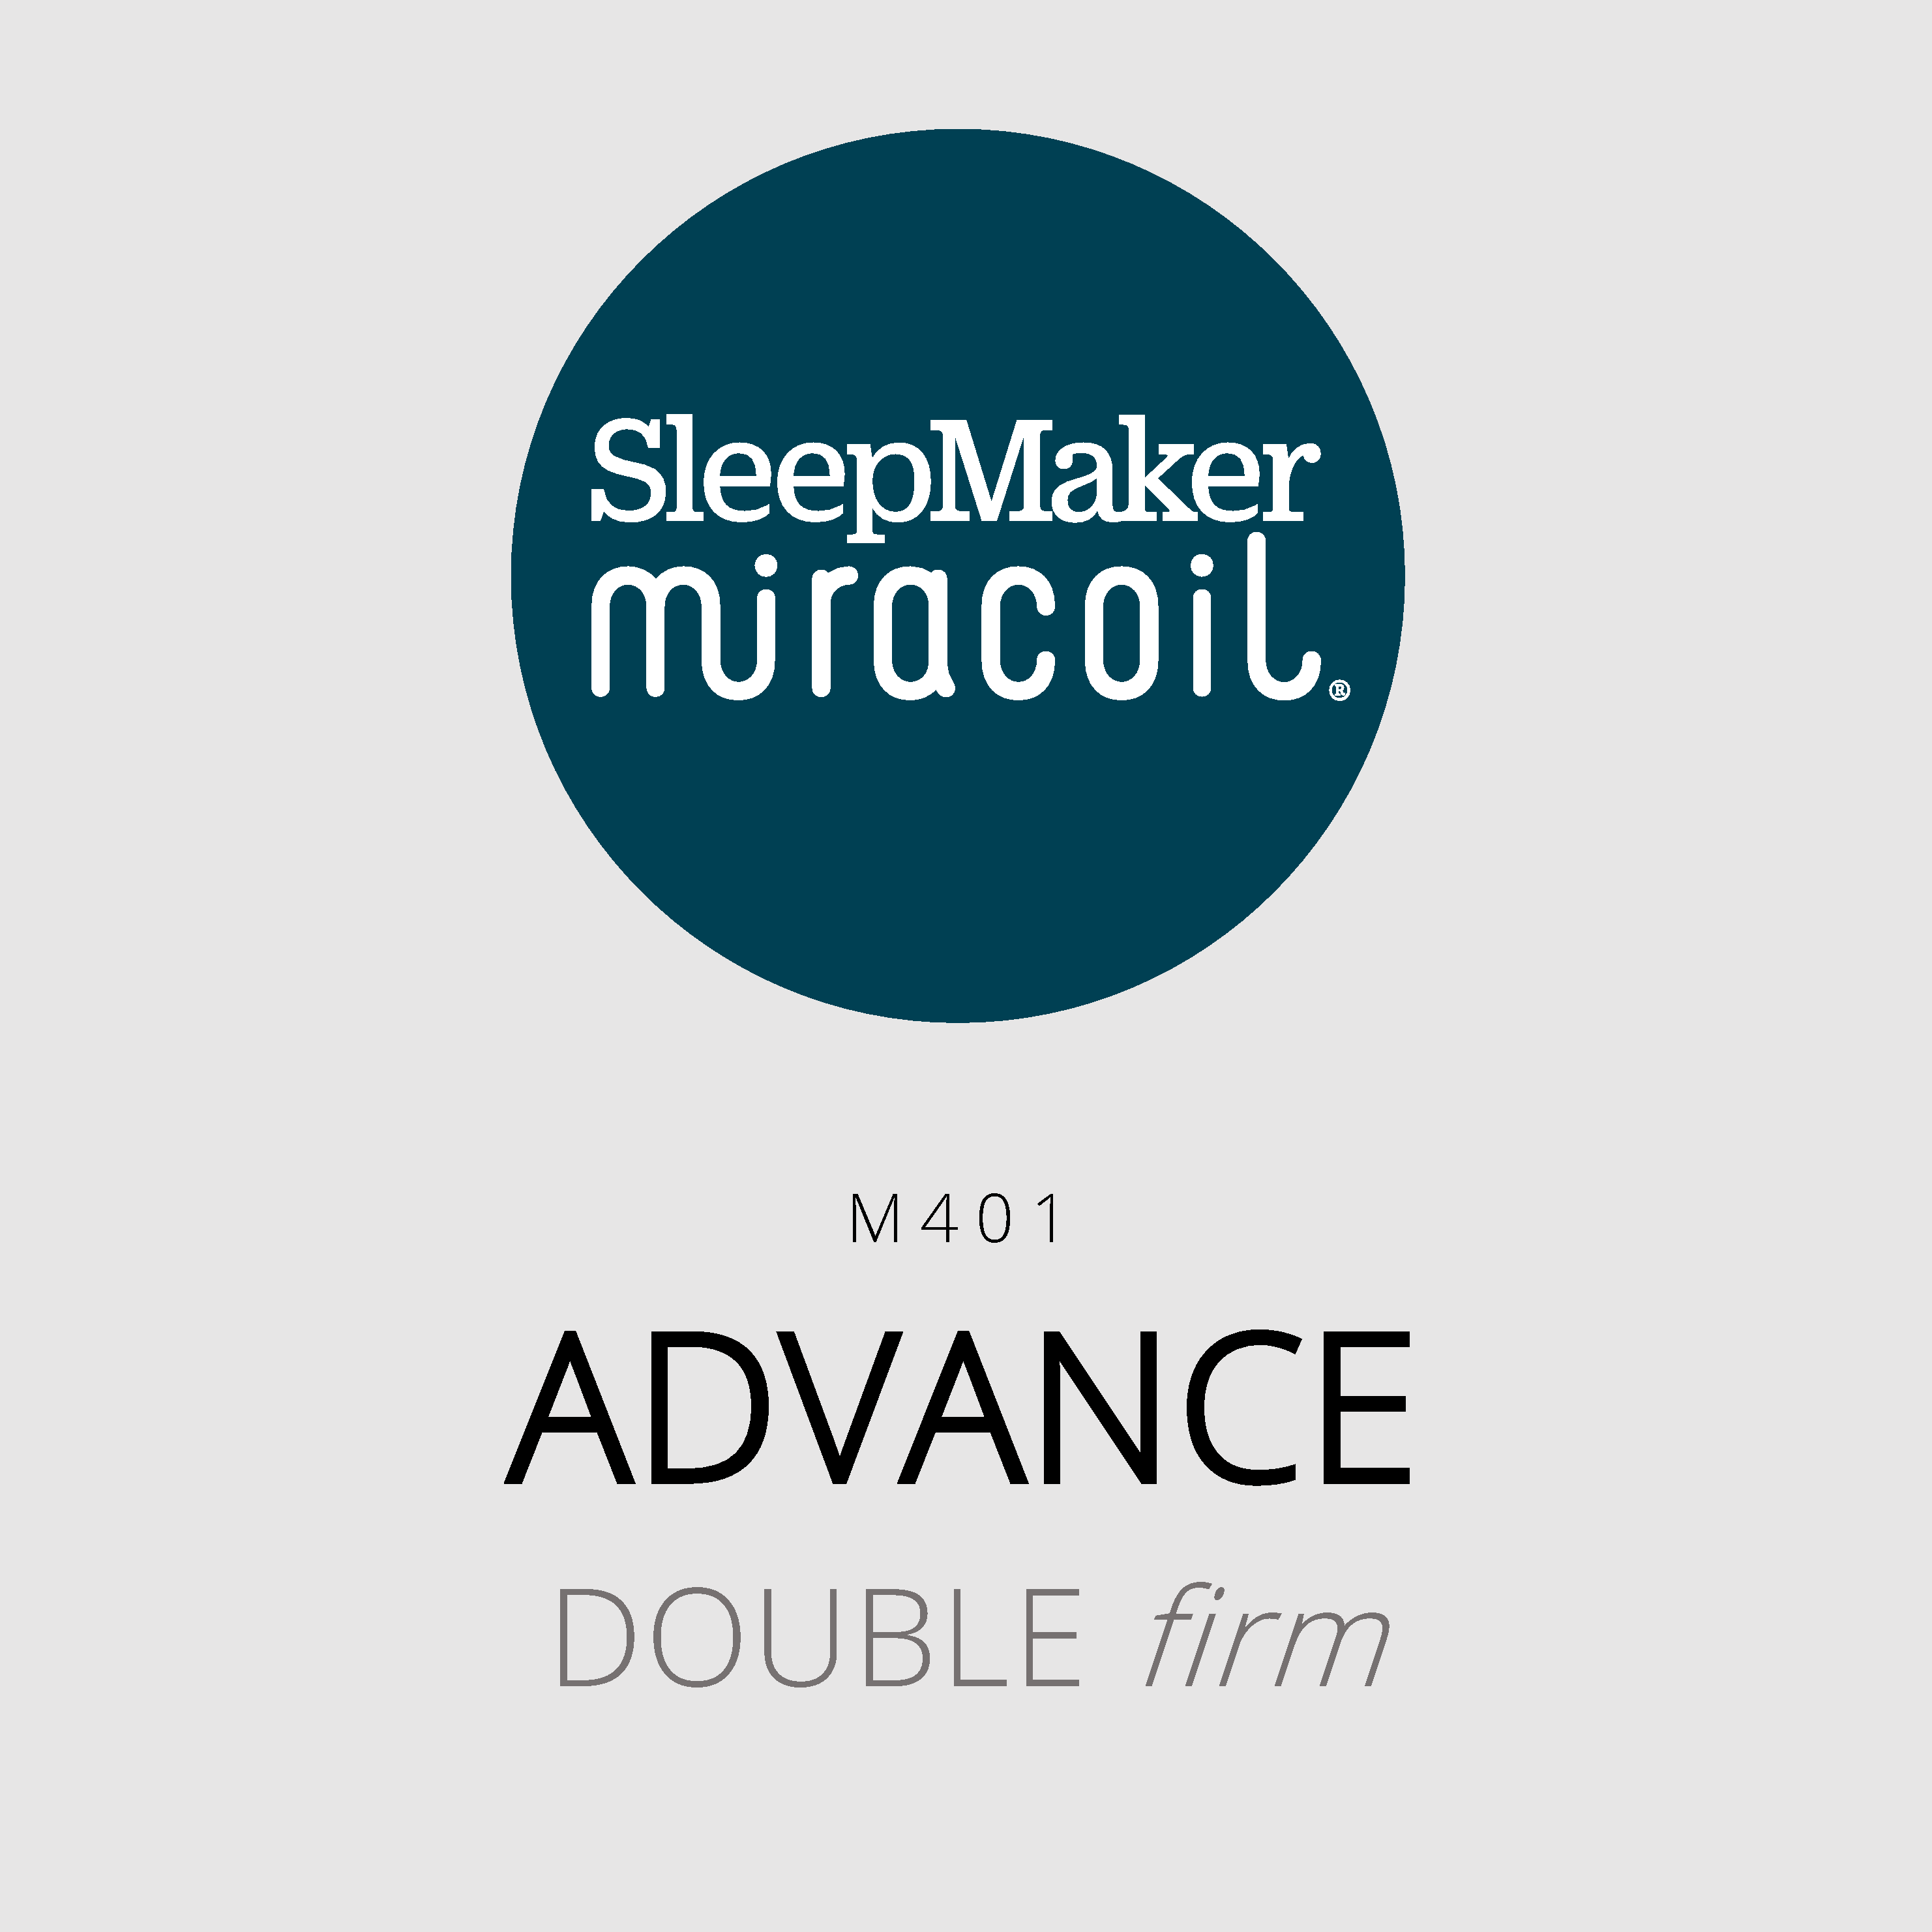 SleepMaker Miracoil – Advance – M401 – Double Firm Mattress